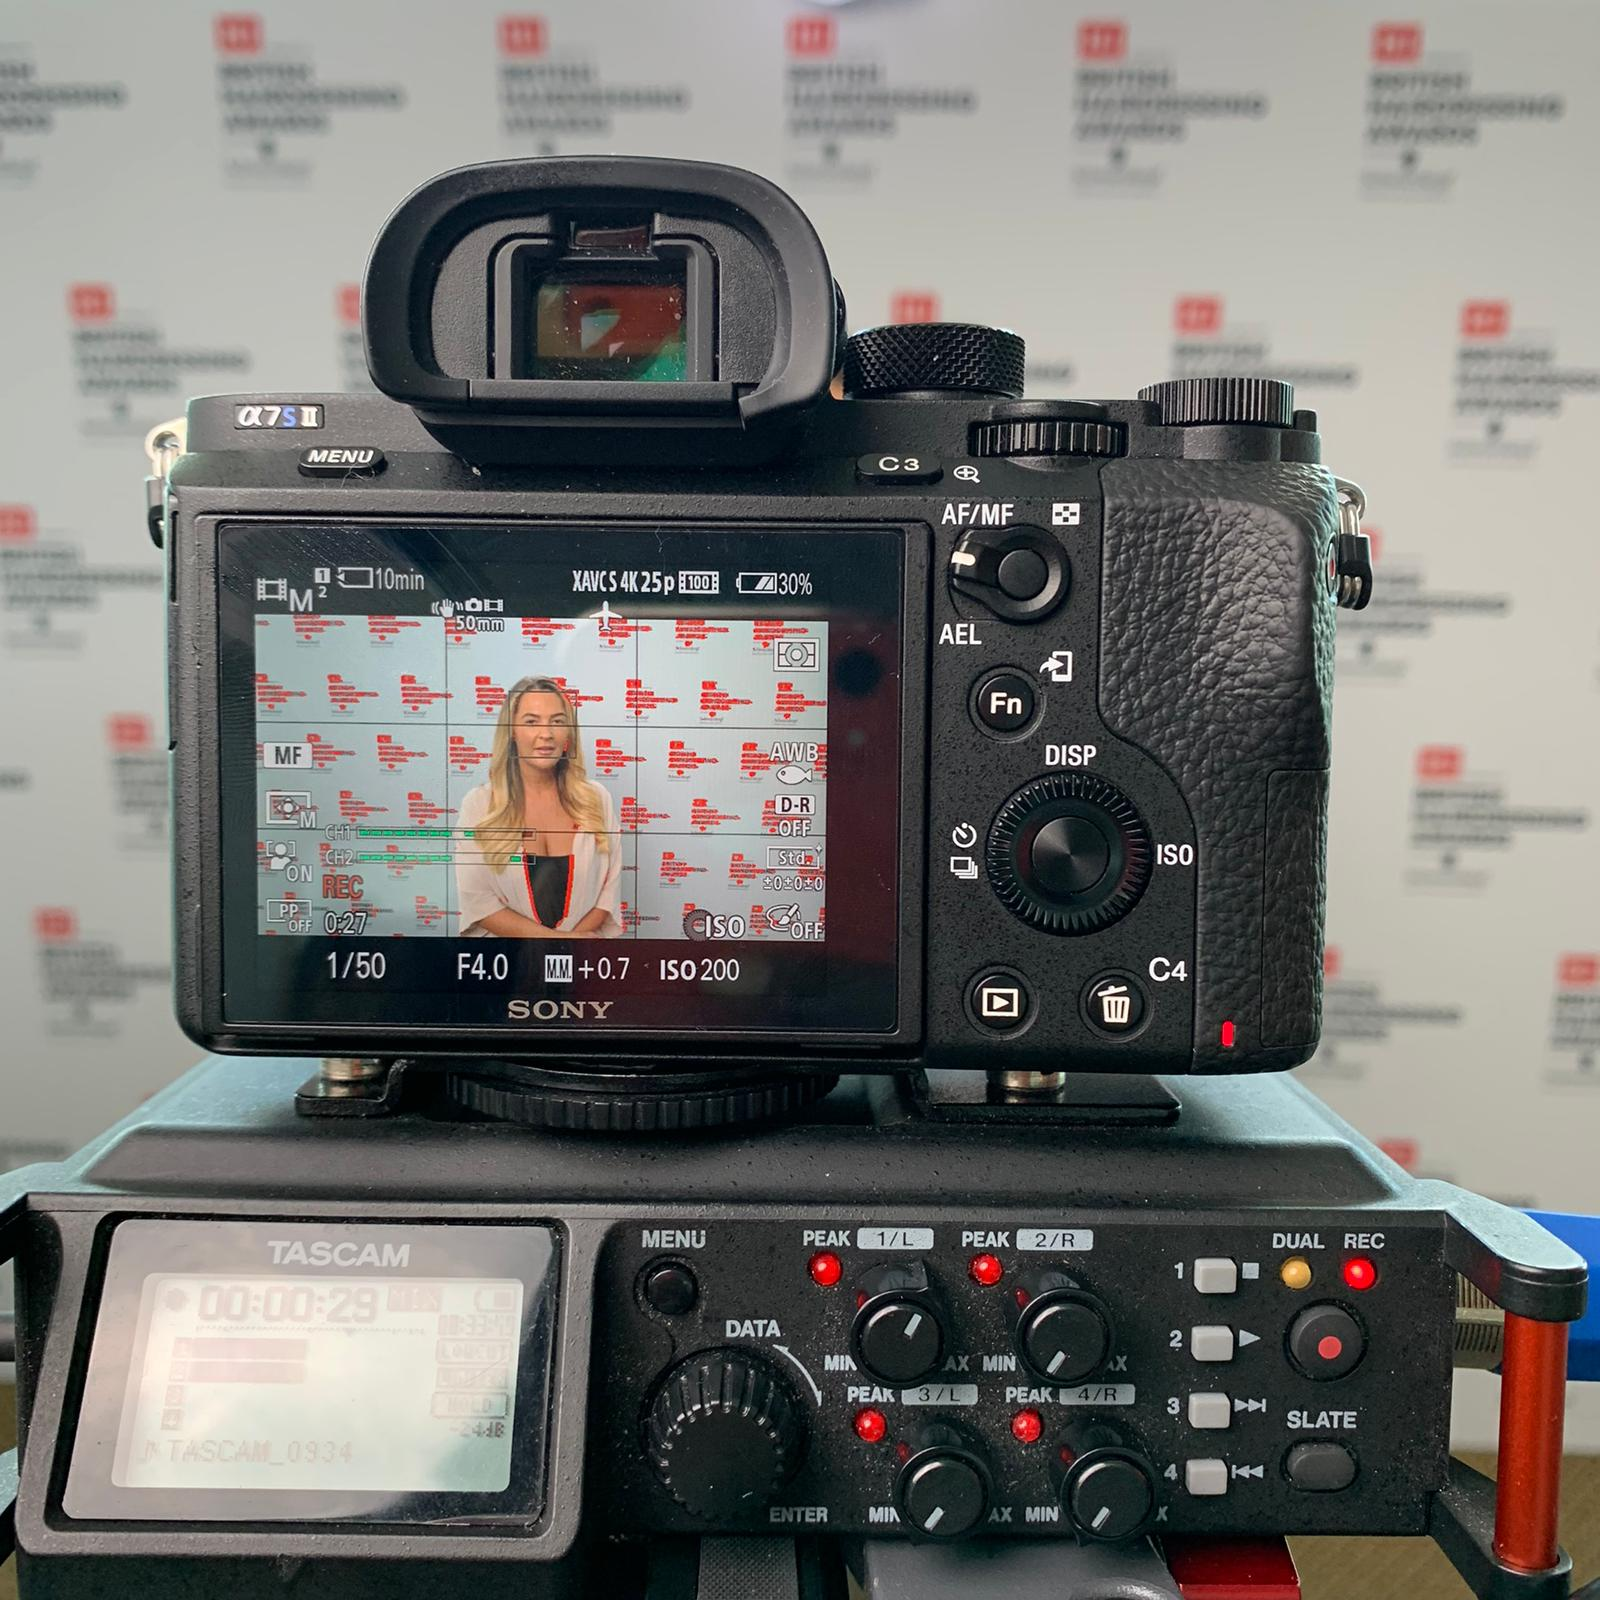 Digital camera mounted on an editing device, the display showing a woman in front of the BHA logo wall